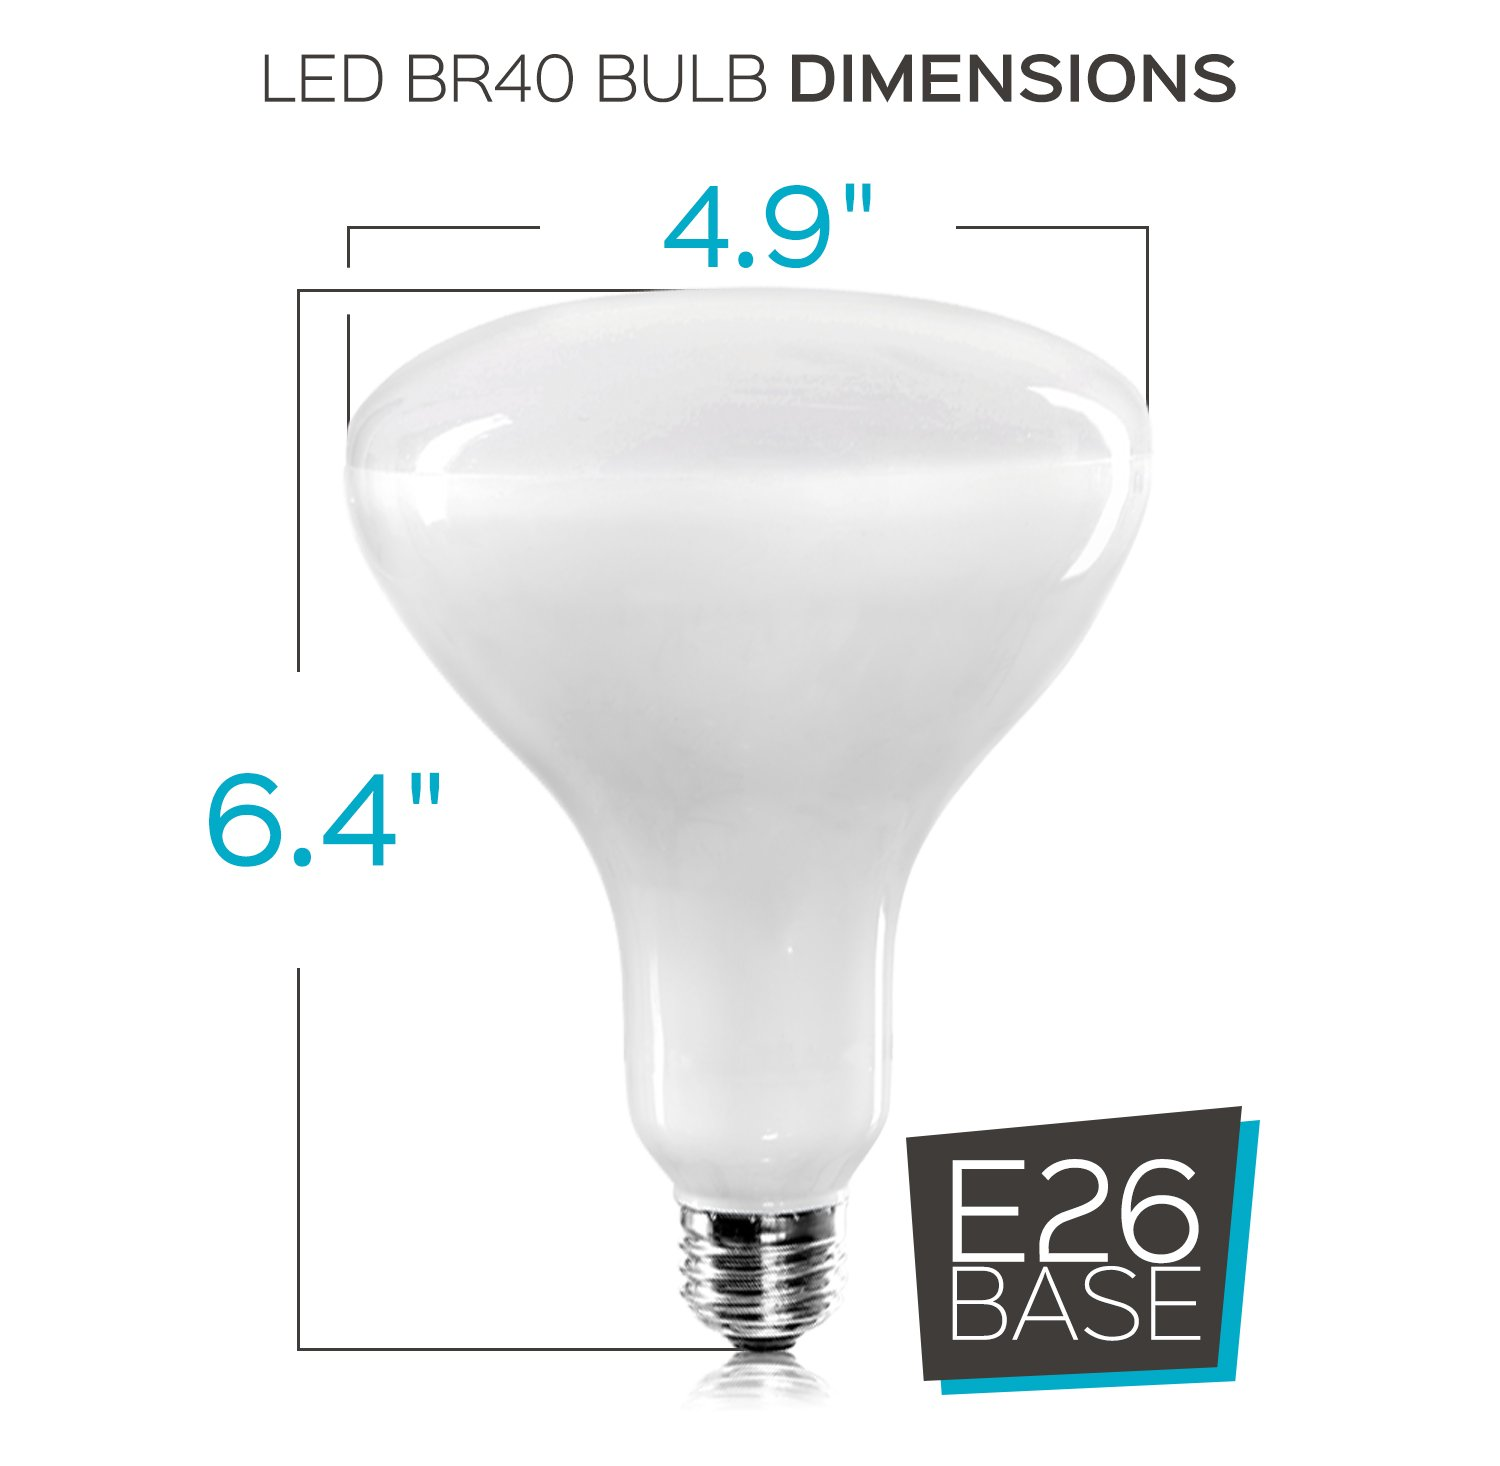 Luxrite BR40 LED Light Bulbs, 85W Equivalent, 3500K Natural White, Dimmable, 1100 Lumen, LED Flood Light Bulb, 14W, E26 Medium Base, Indoor/Outdoor - Perfect for Office and Recessed Lighting (12 Pack) by Luxrite (Image #5)